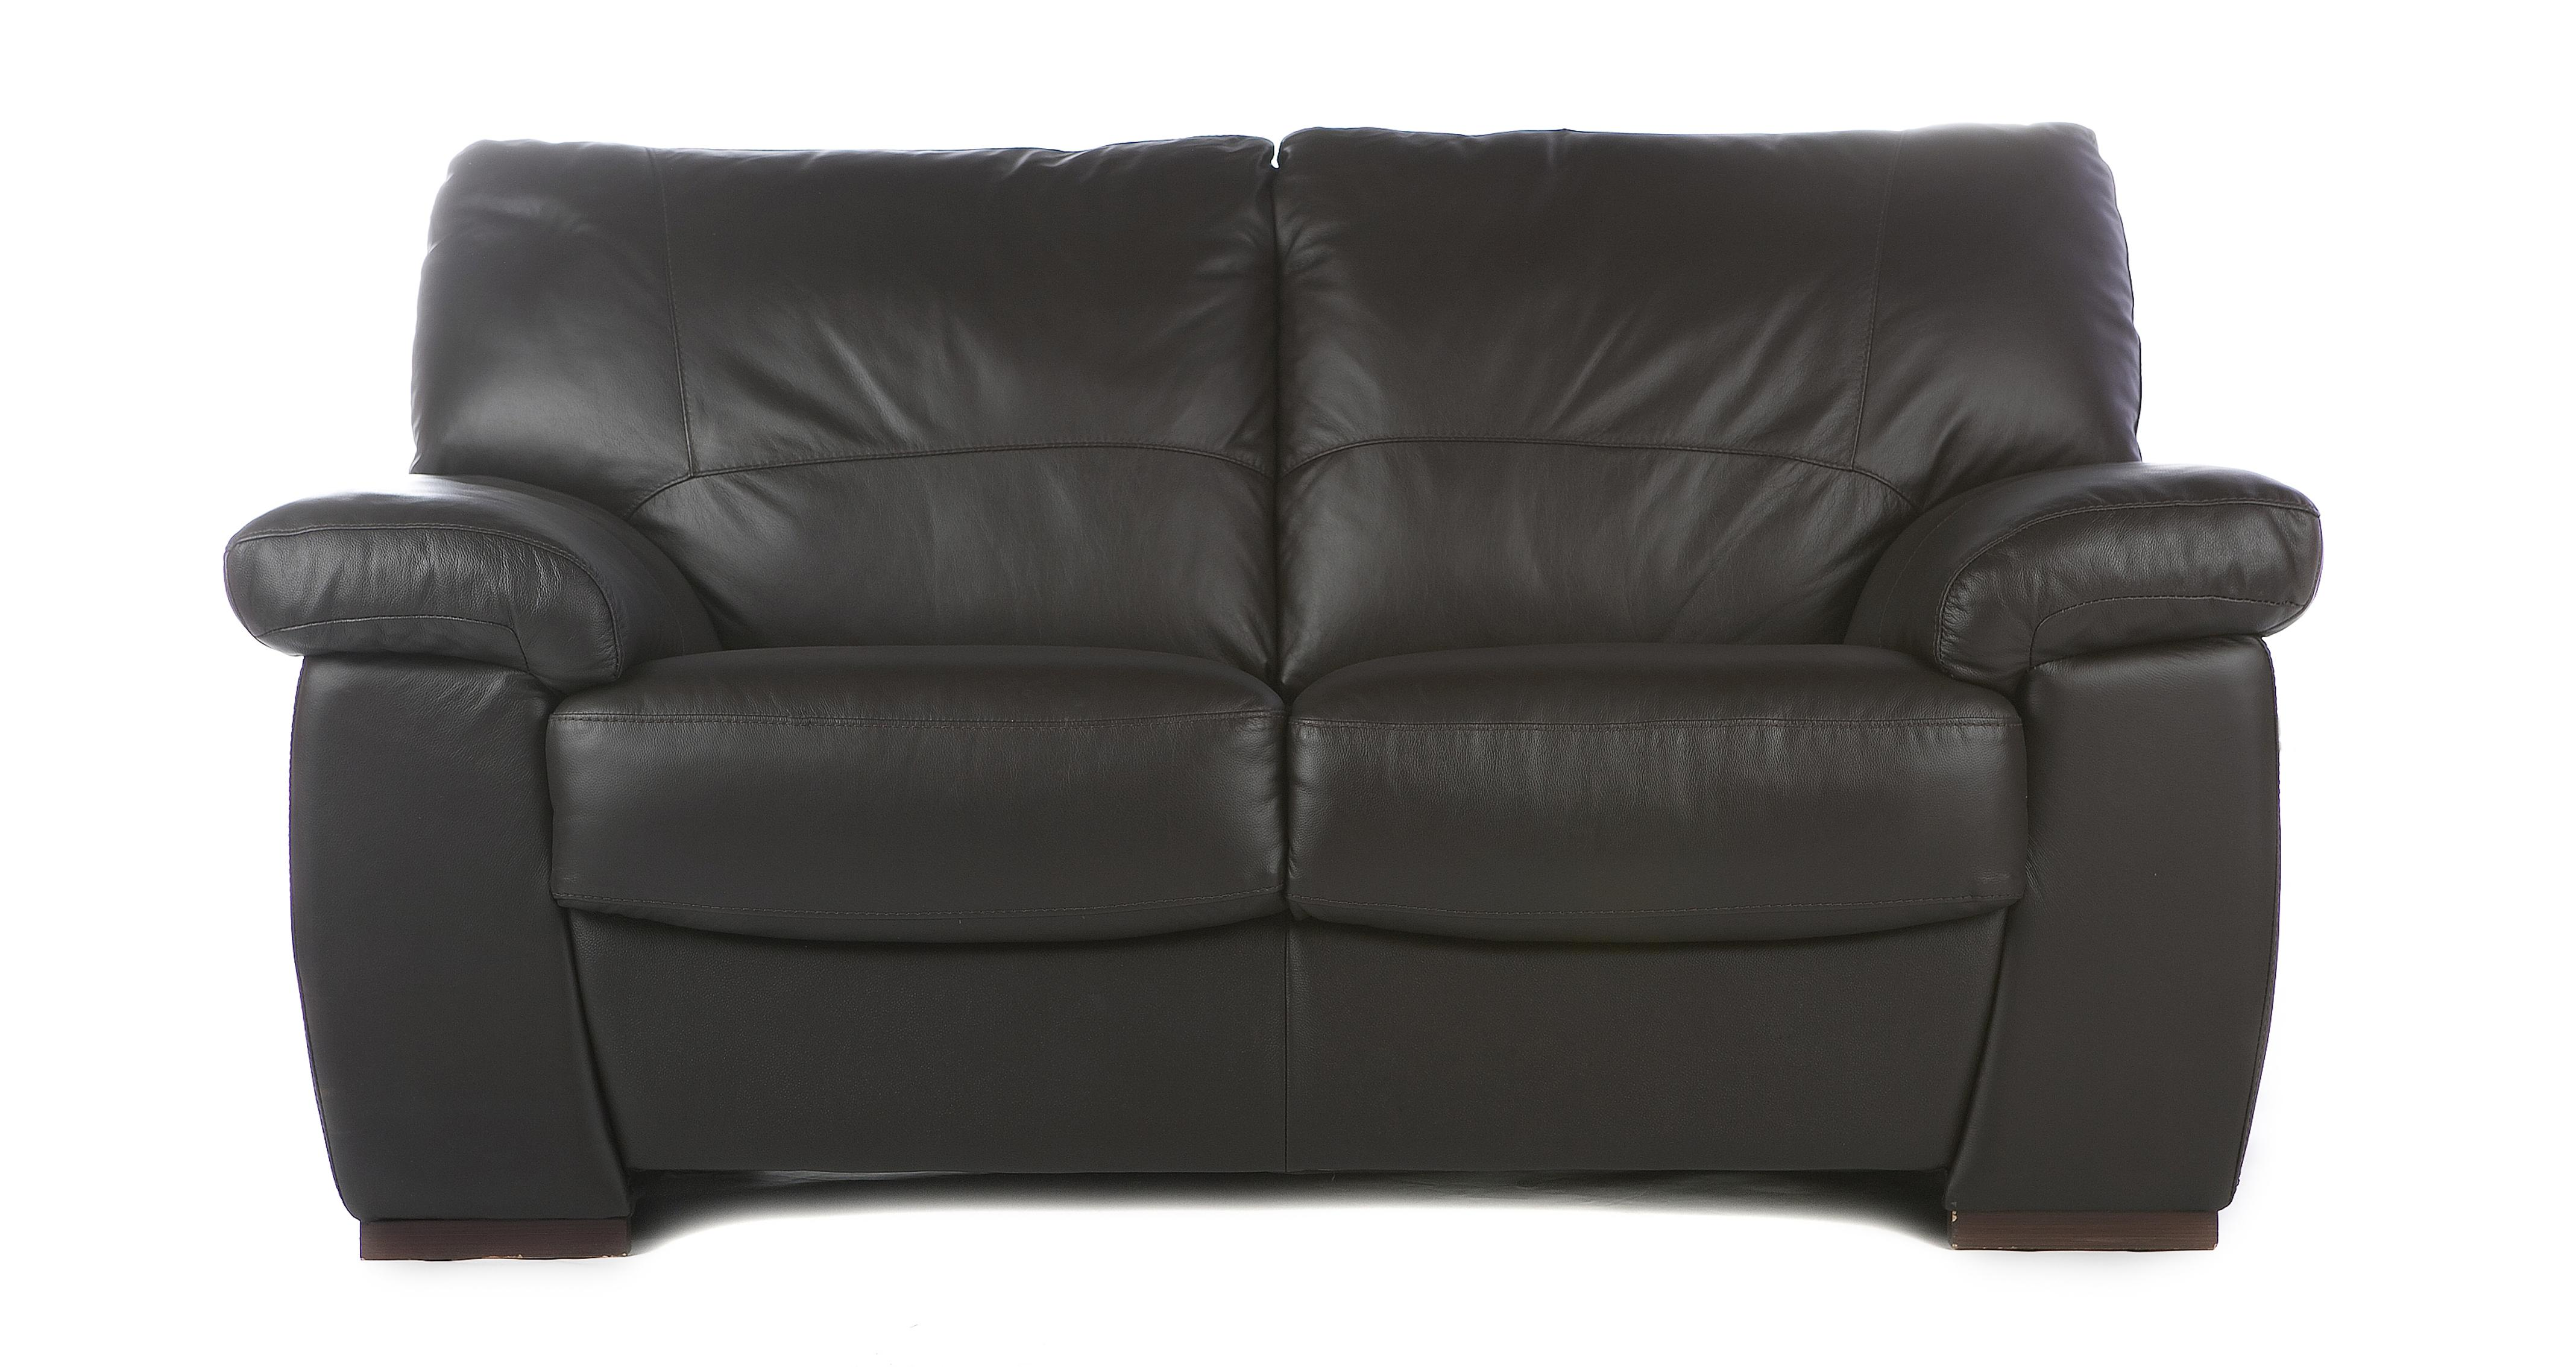 Pavilion Leather and Leather Look 2 Seater Sofa Essential